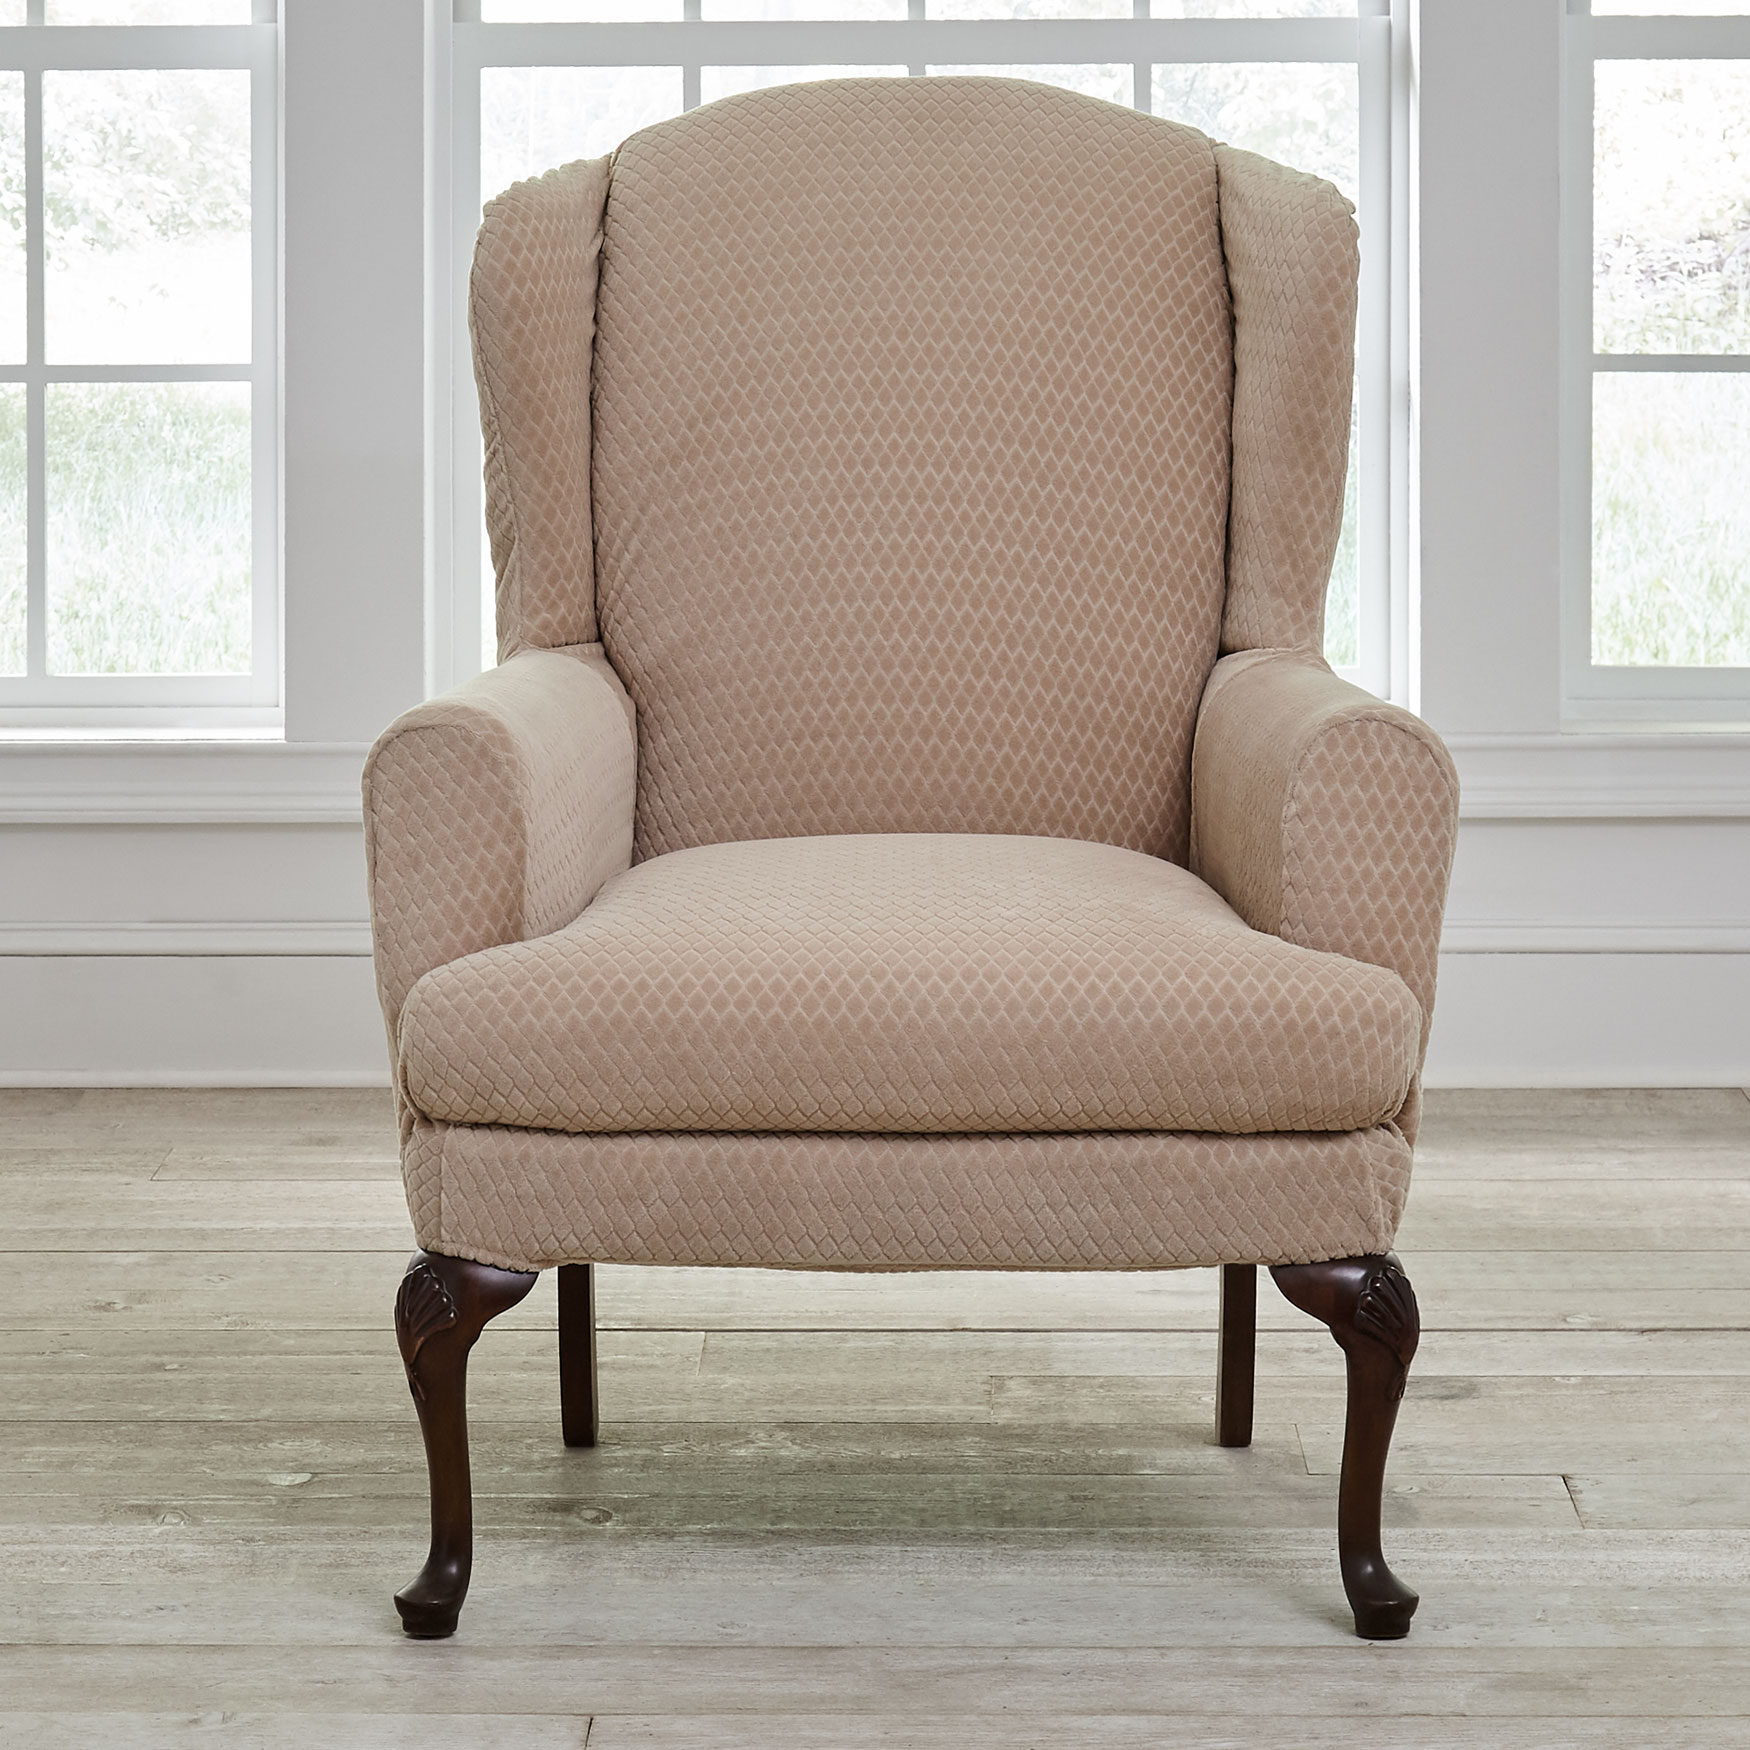 BH Studio® Stretch Diamond Wing Chair Slipcover, LIGHT TAUPE